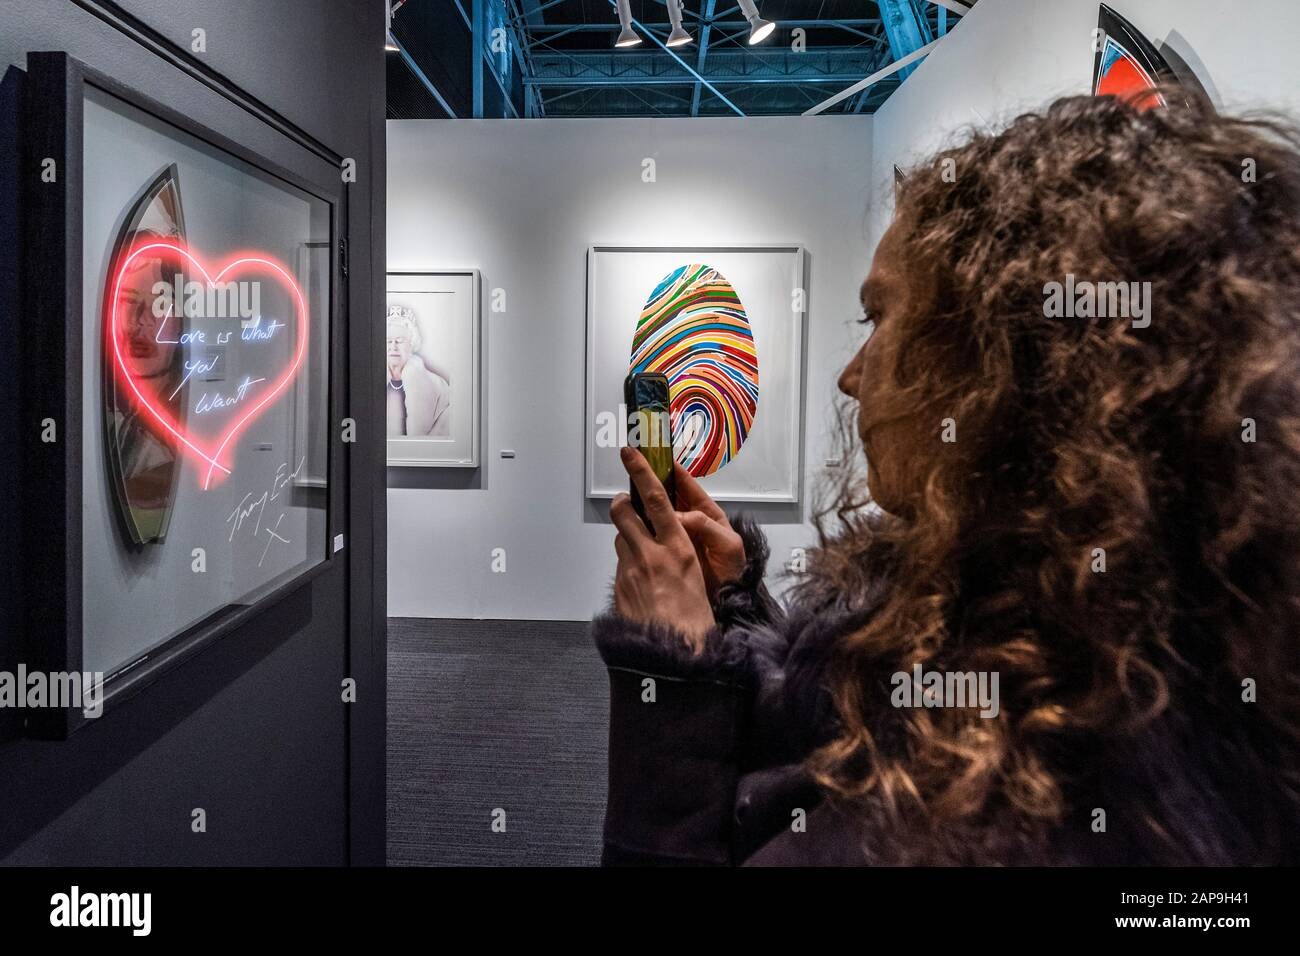 Islington, London, UK. 21st Jan, 2020. Love is what you Want, print by Tracey Emin - the Drang Gallery - The London Art Fair, at the Business Design Centre in Islington. Includes international galleries selling modern and contemporary artworks. Credit: Guy Bell/Alamy Live News Stock Photo